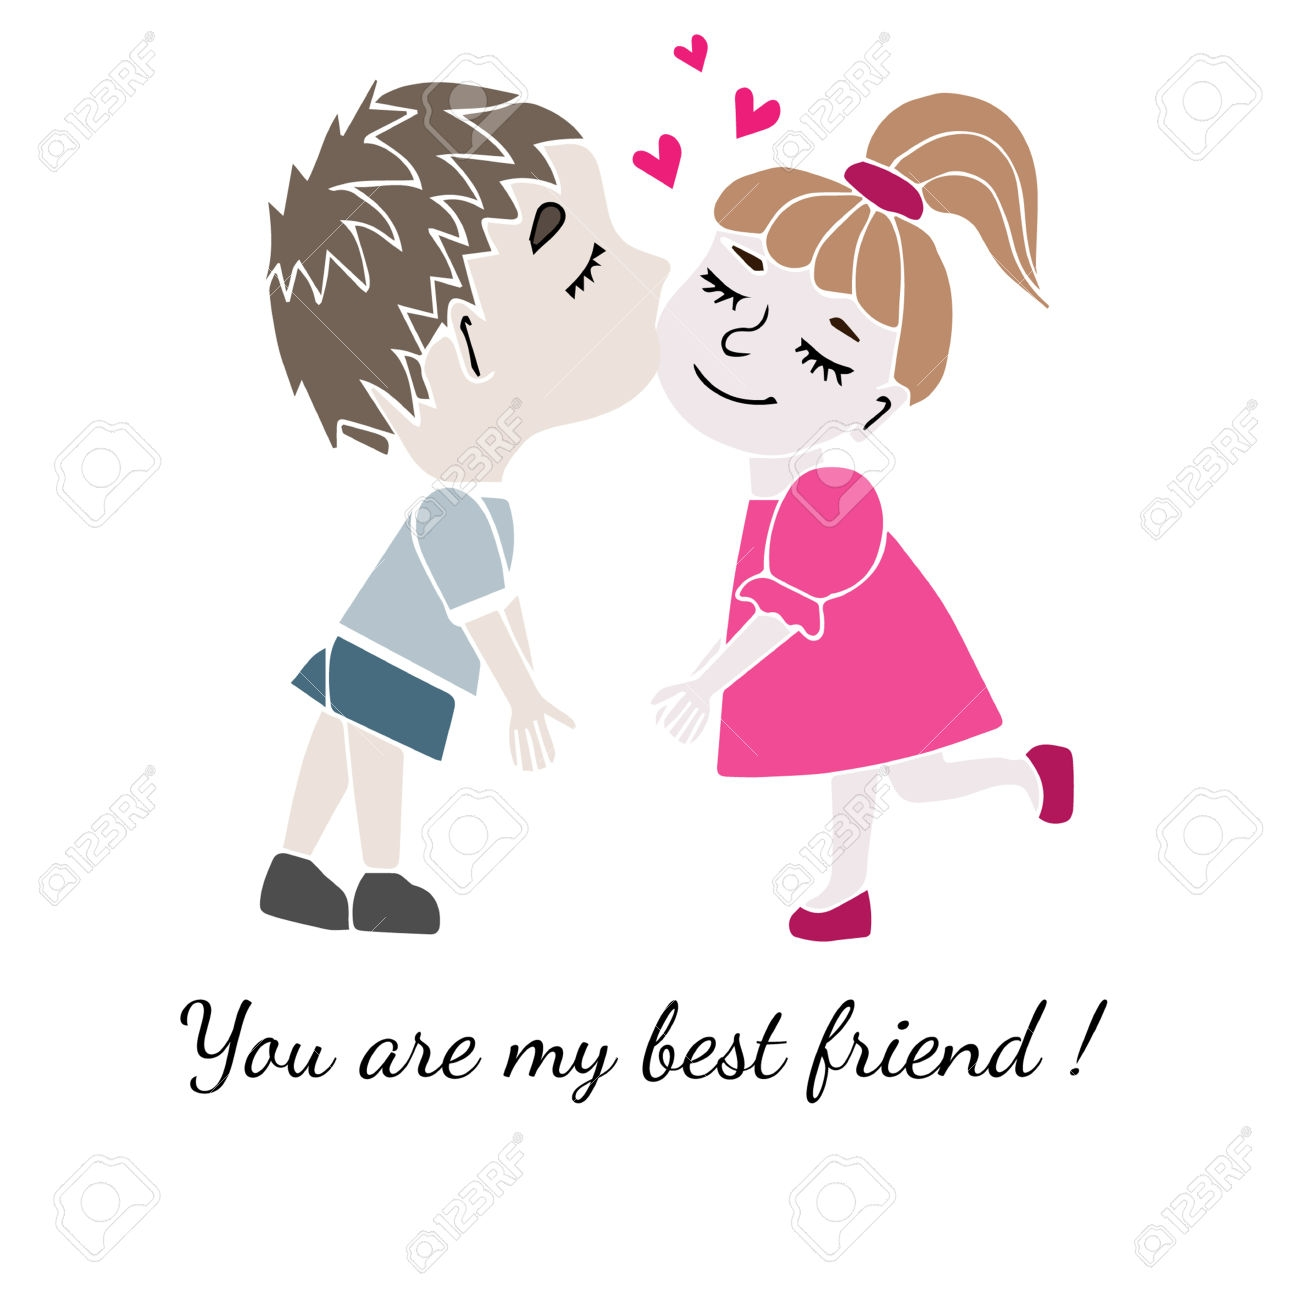 1300x1300 Clip Art Two Best Friends Boy And Girl Together With Inscription